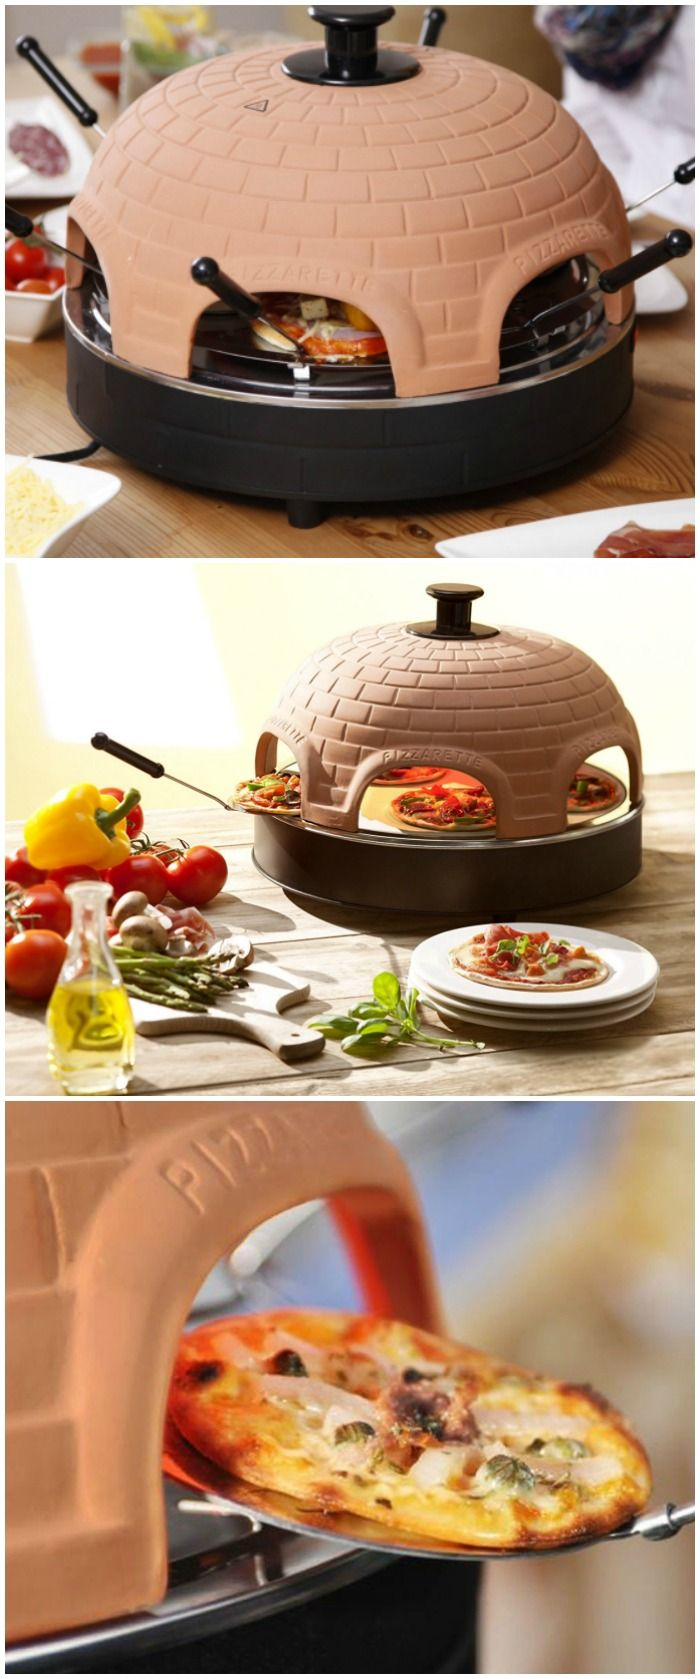 Pizzarette – Europe's Best-Selling Tabletop Mini Pizza Oven. #affiliate